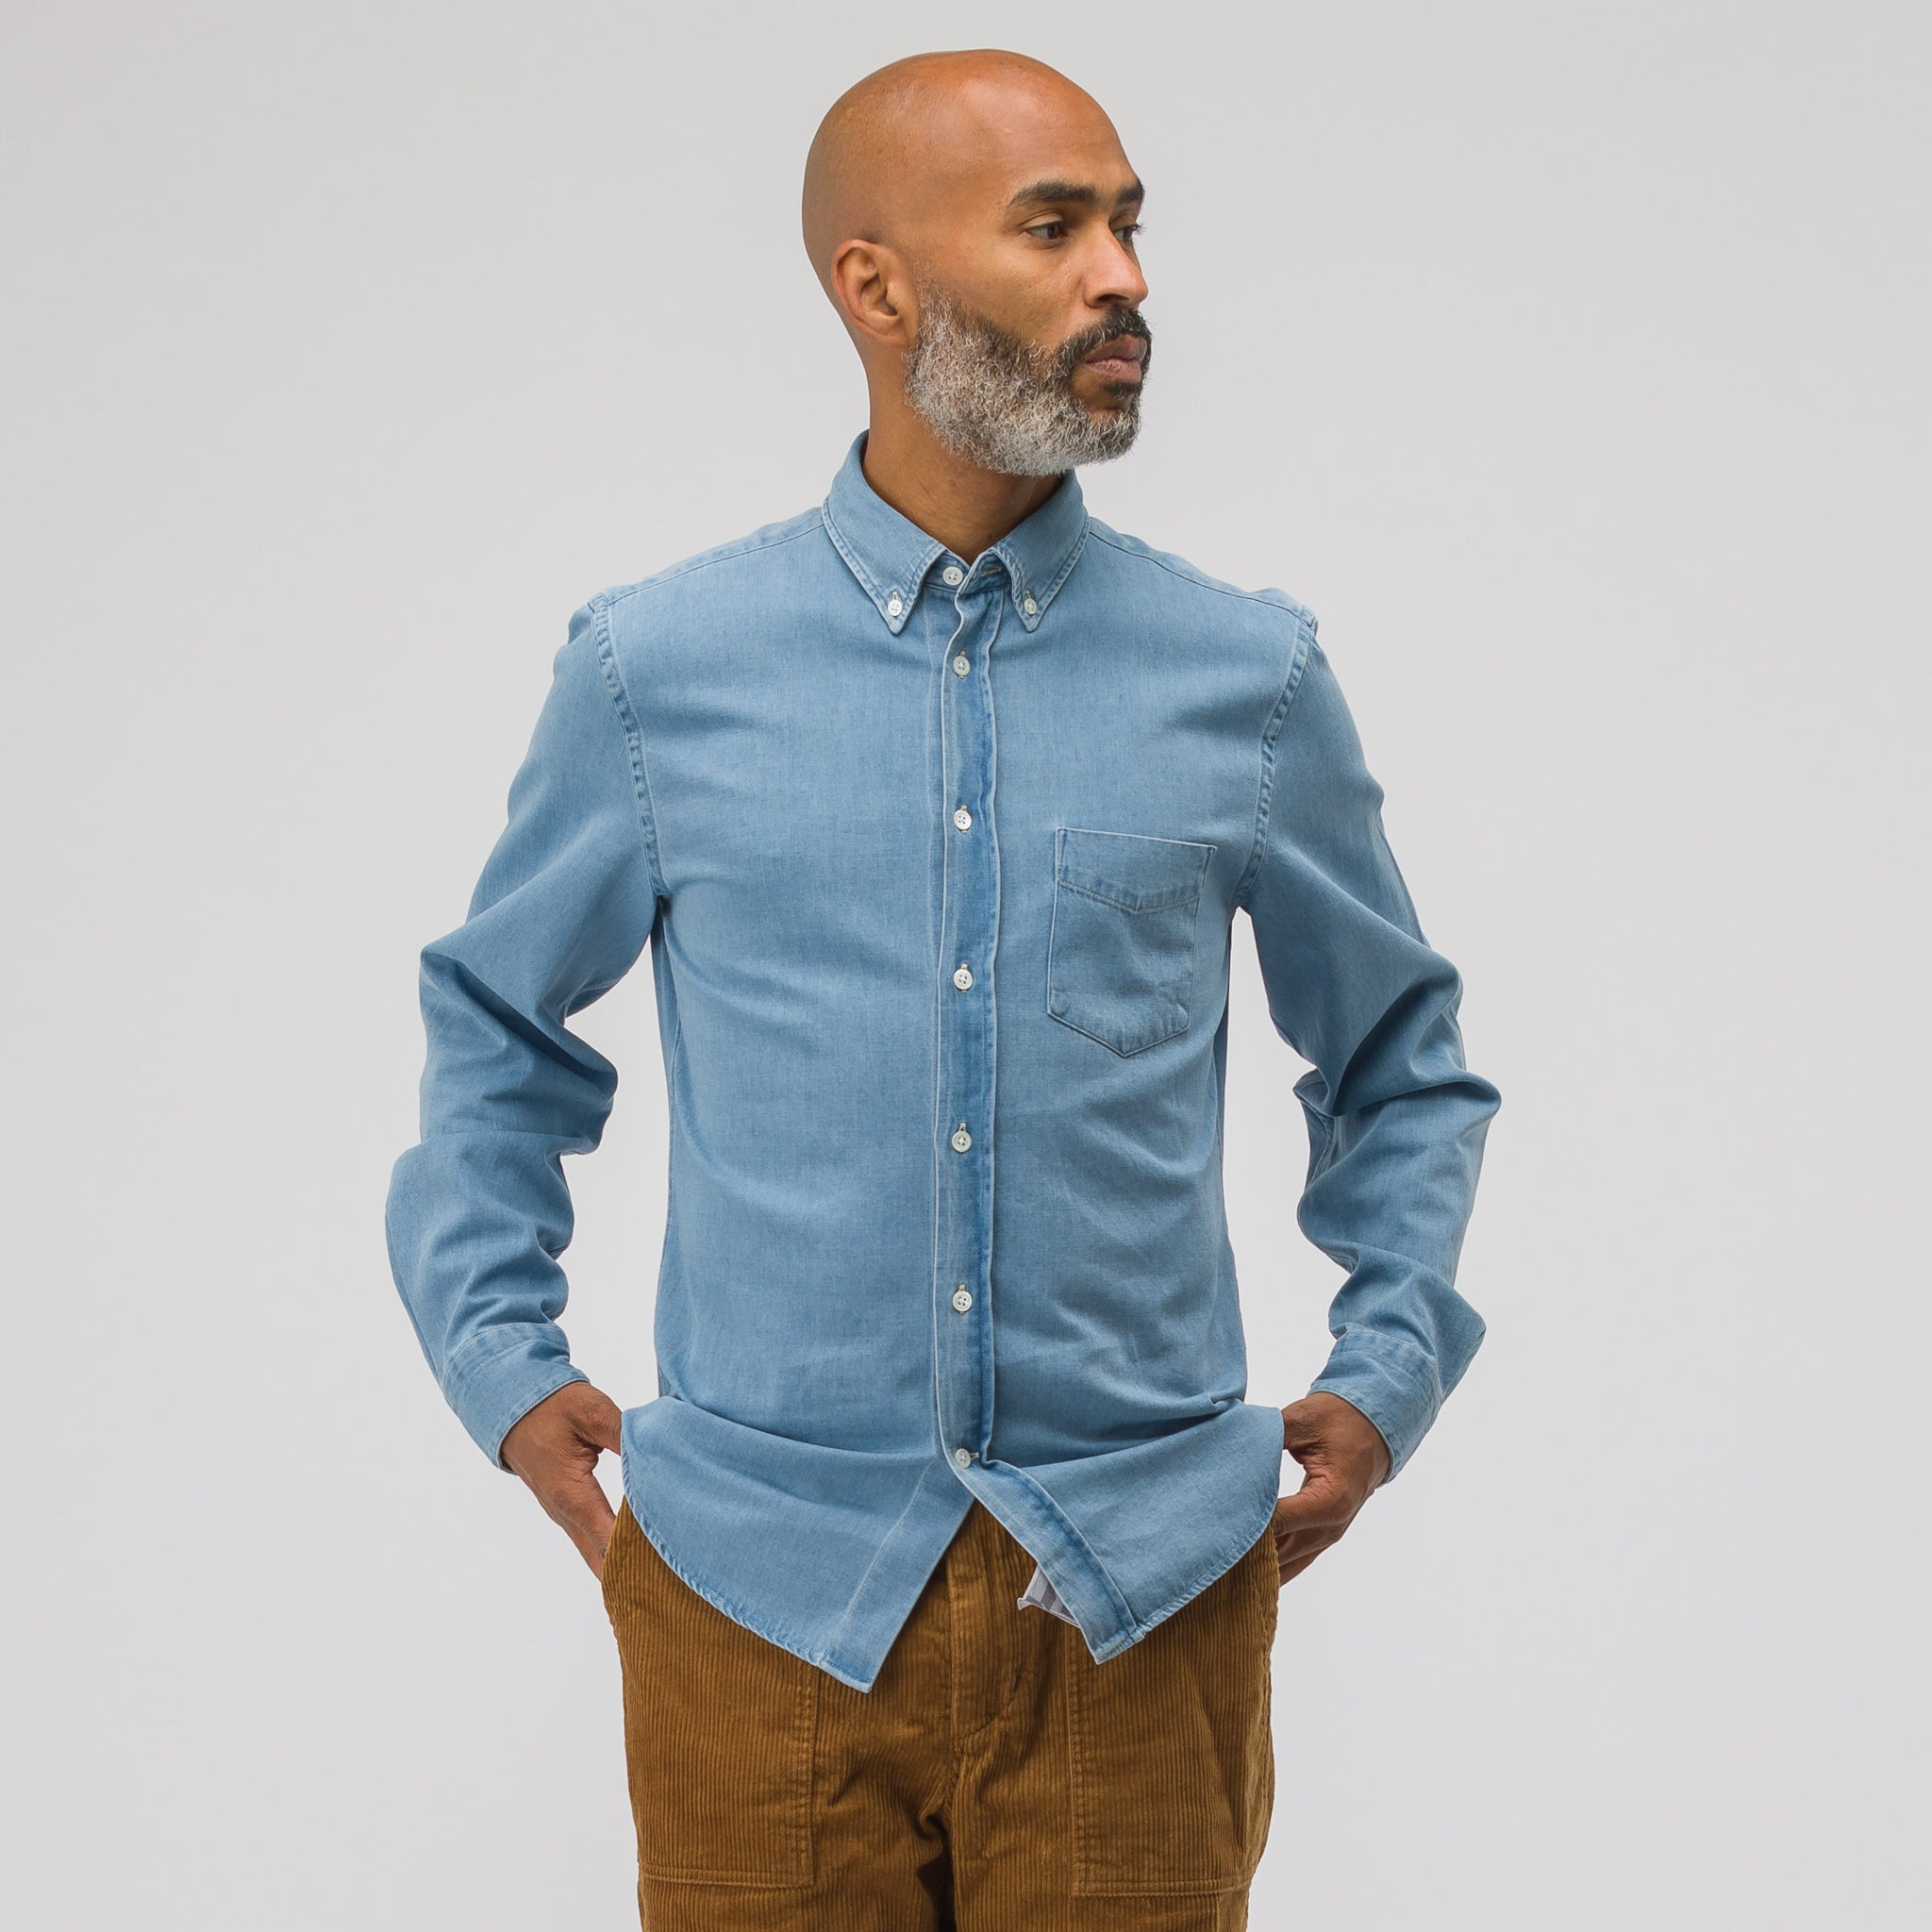 d247d4b728 ... Others From Acne Studios. Isherwood Denim Shirt in Washed Indigo